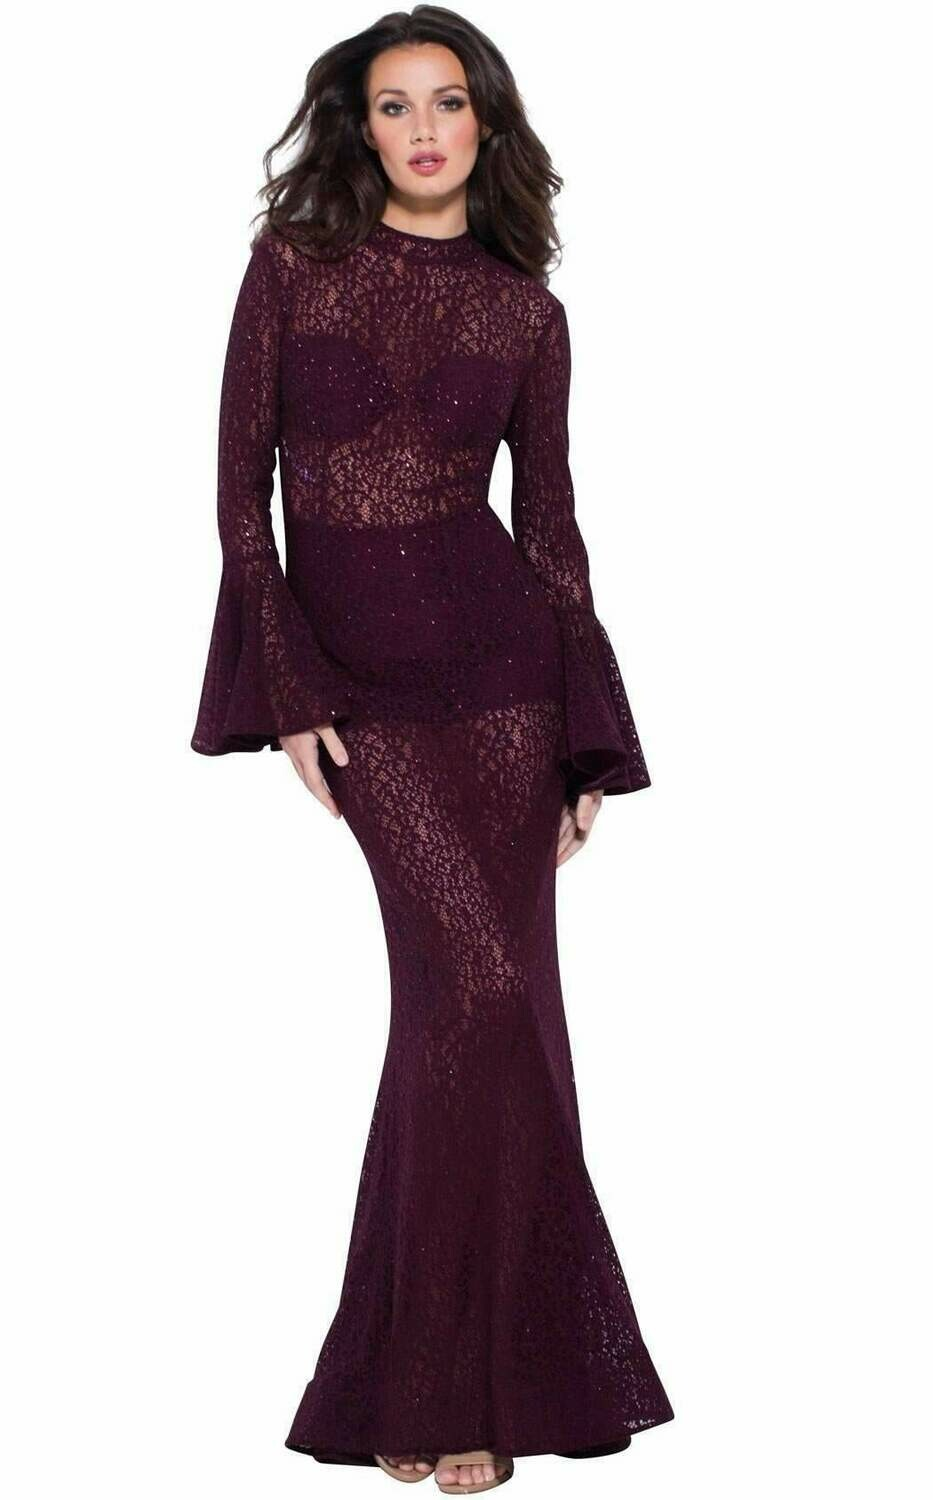 Jovani Long Bell Sleeve Lace and Sequined Gown in Plum